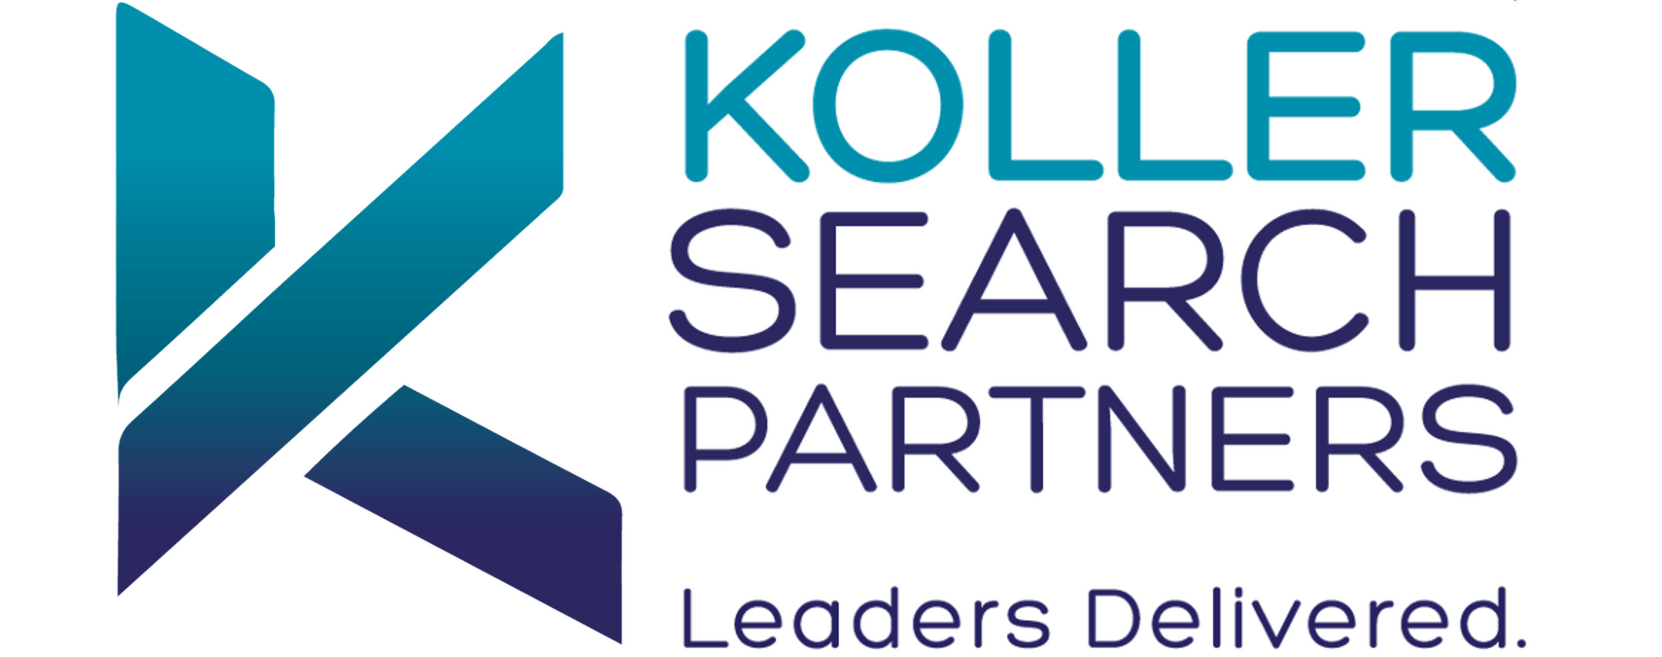 Koller Search Partners